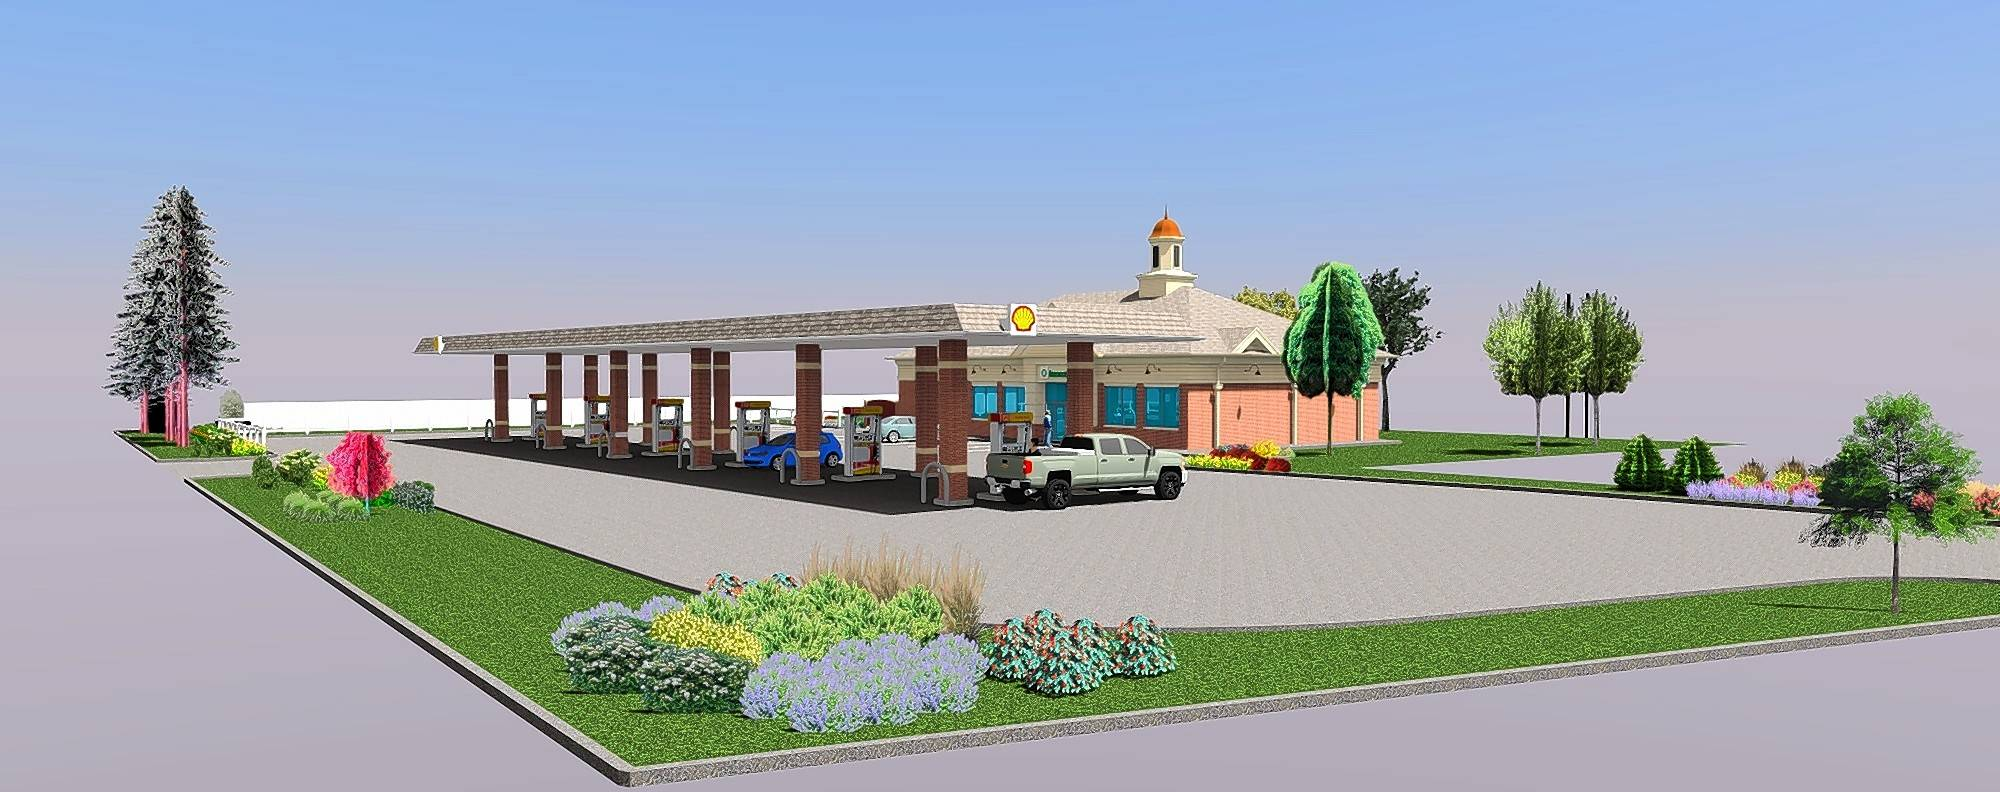 Developers are seeking to build a gas station and convenience store, shown in this rendering, on village-owned land at 825 N. Main St. in Glen Ellyn.